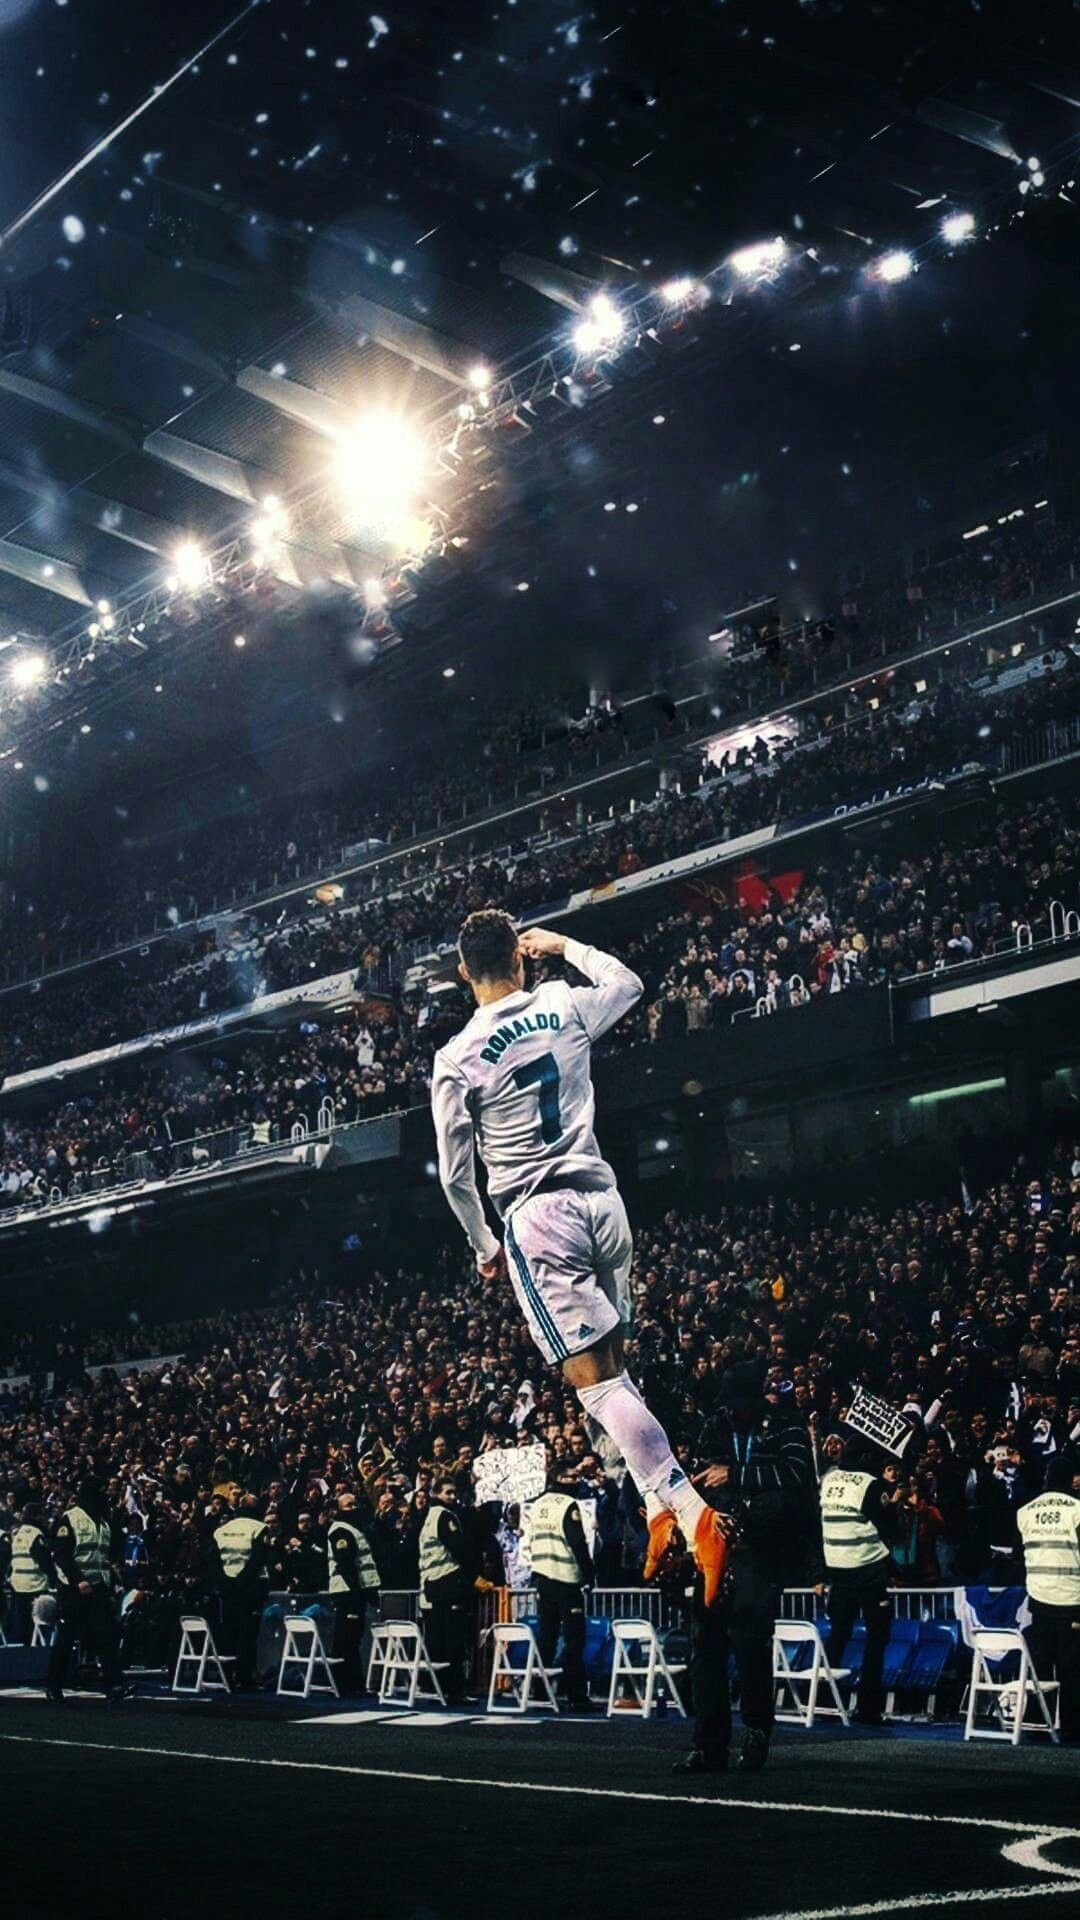 Cristiano Ronaldo Football Goal Celebration iPhone Wallpaper iphoneswallpapers com